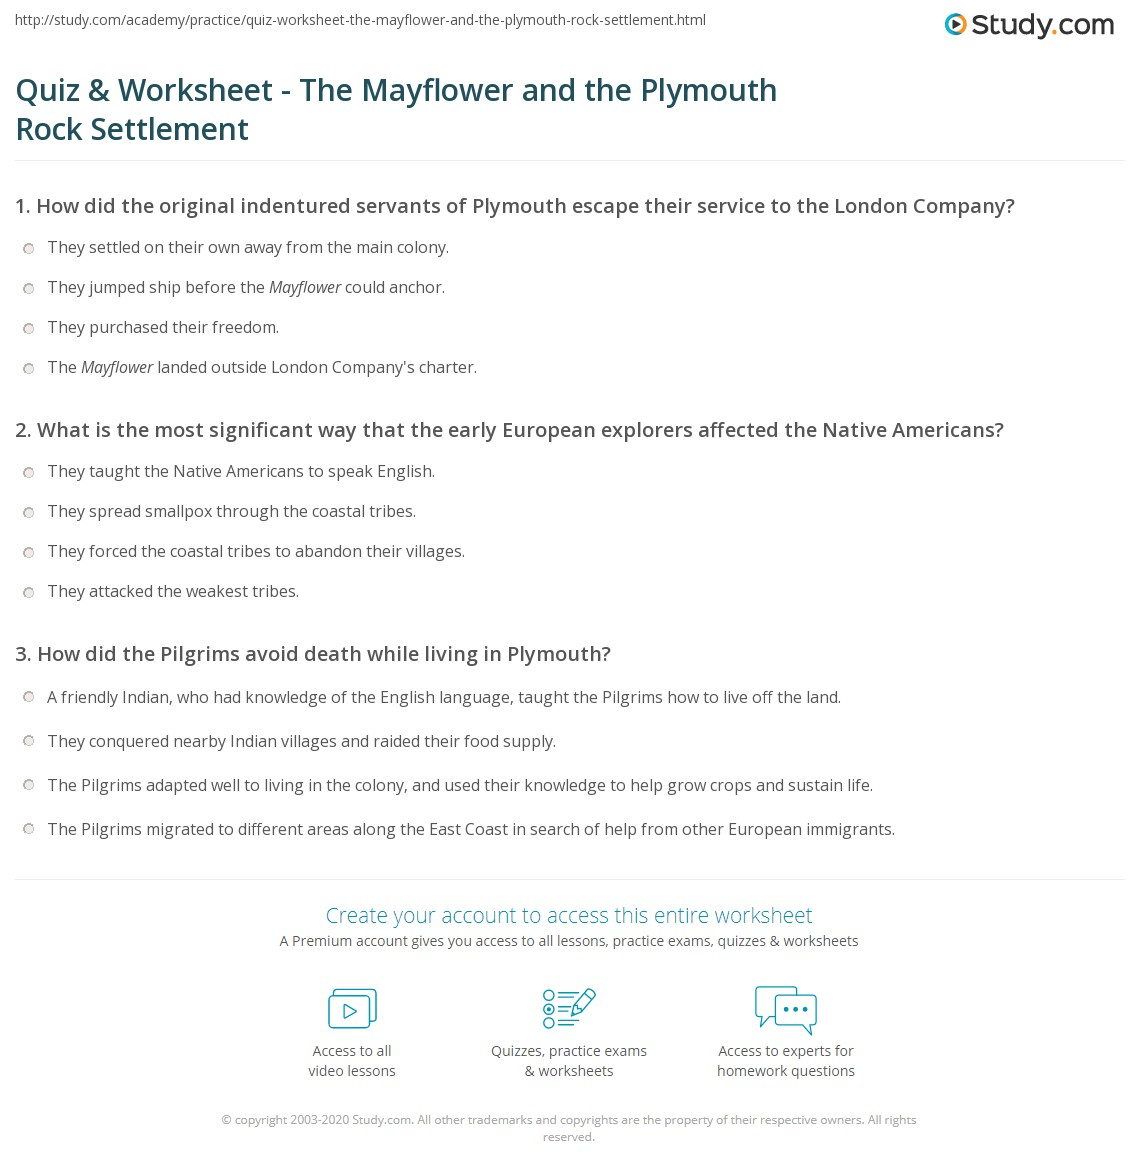 Worksheets Mayflower Compact Worksheet quiz worksheet the mayflower and plymouth rock settlement print worksheet